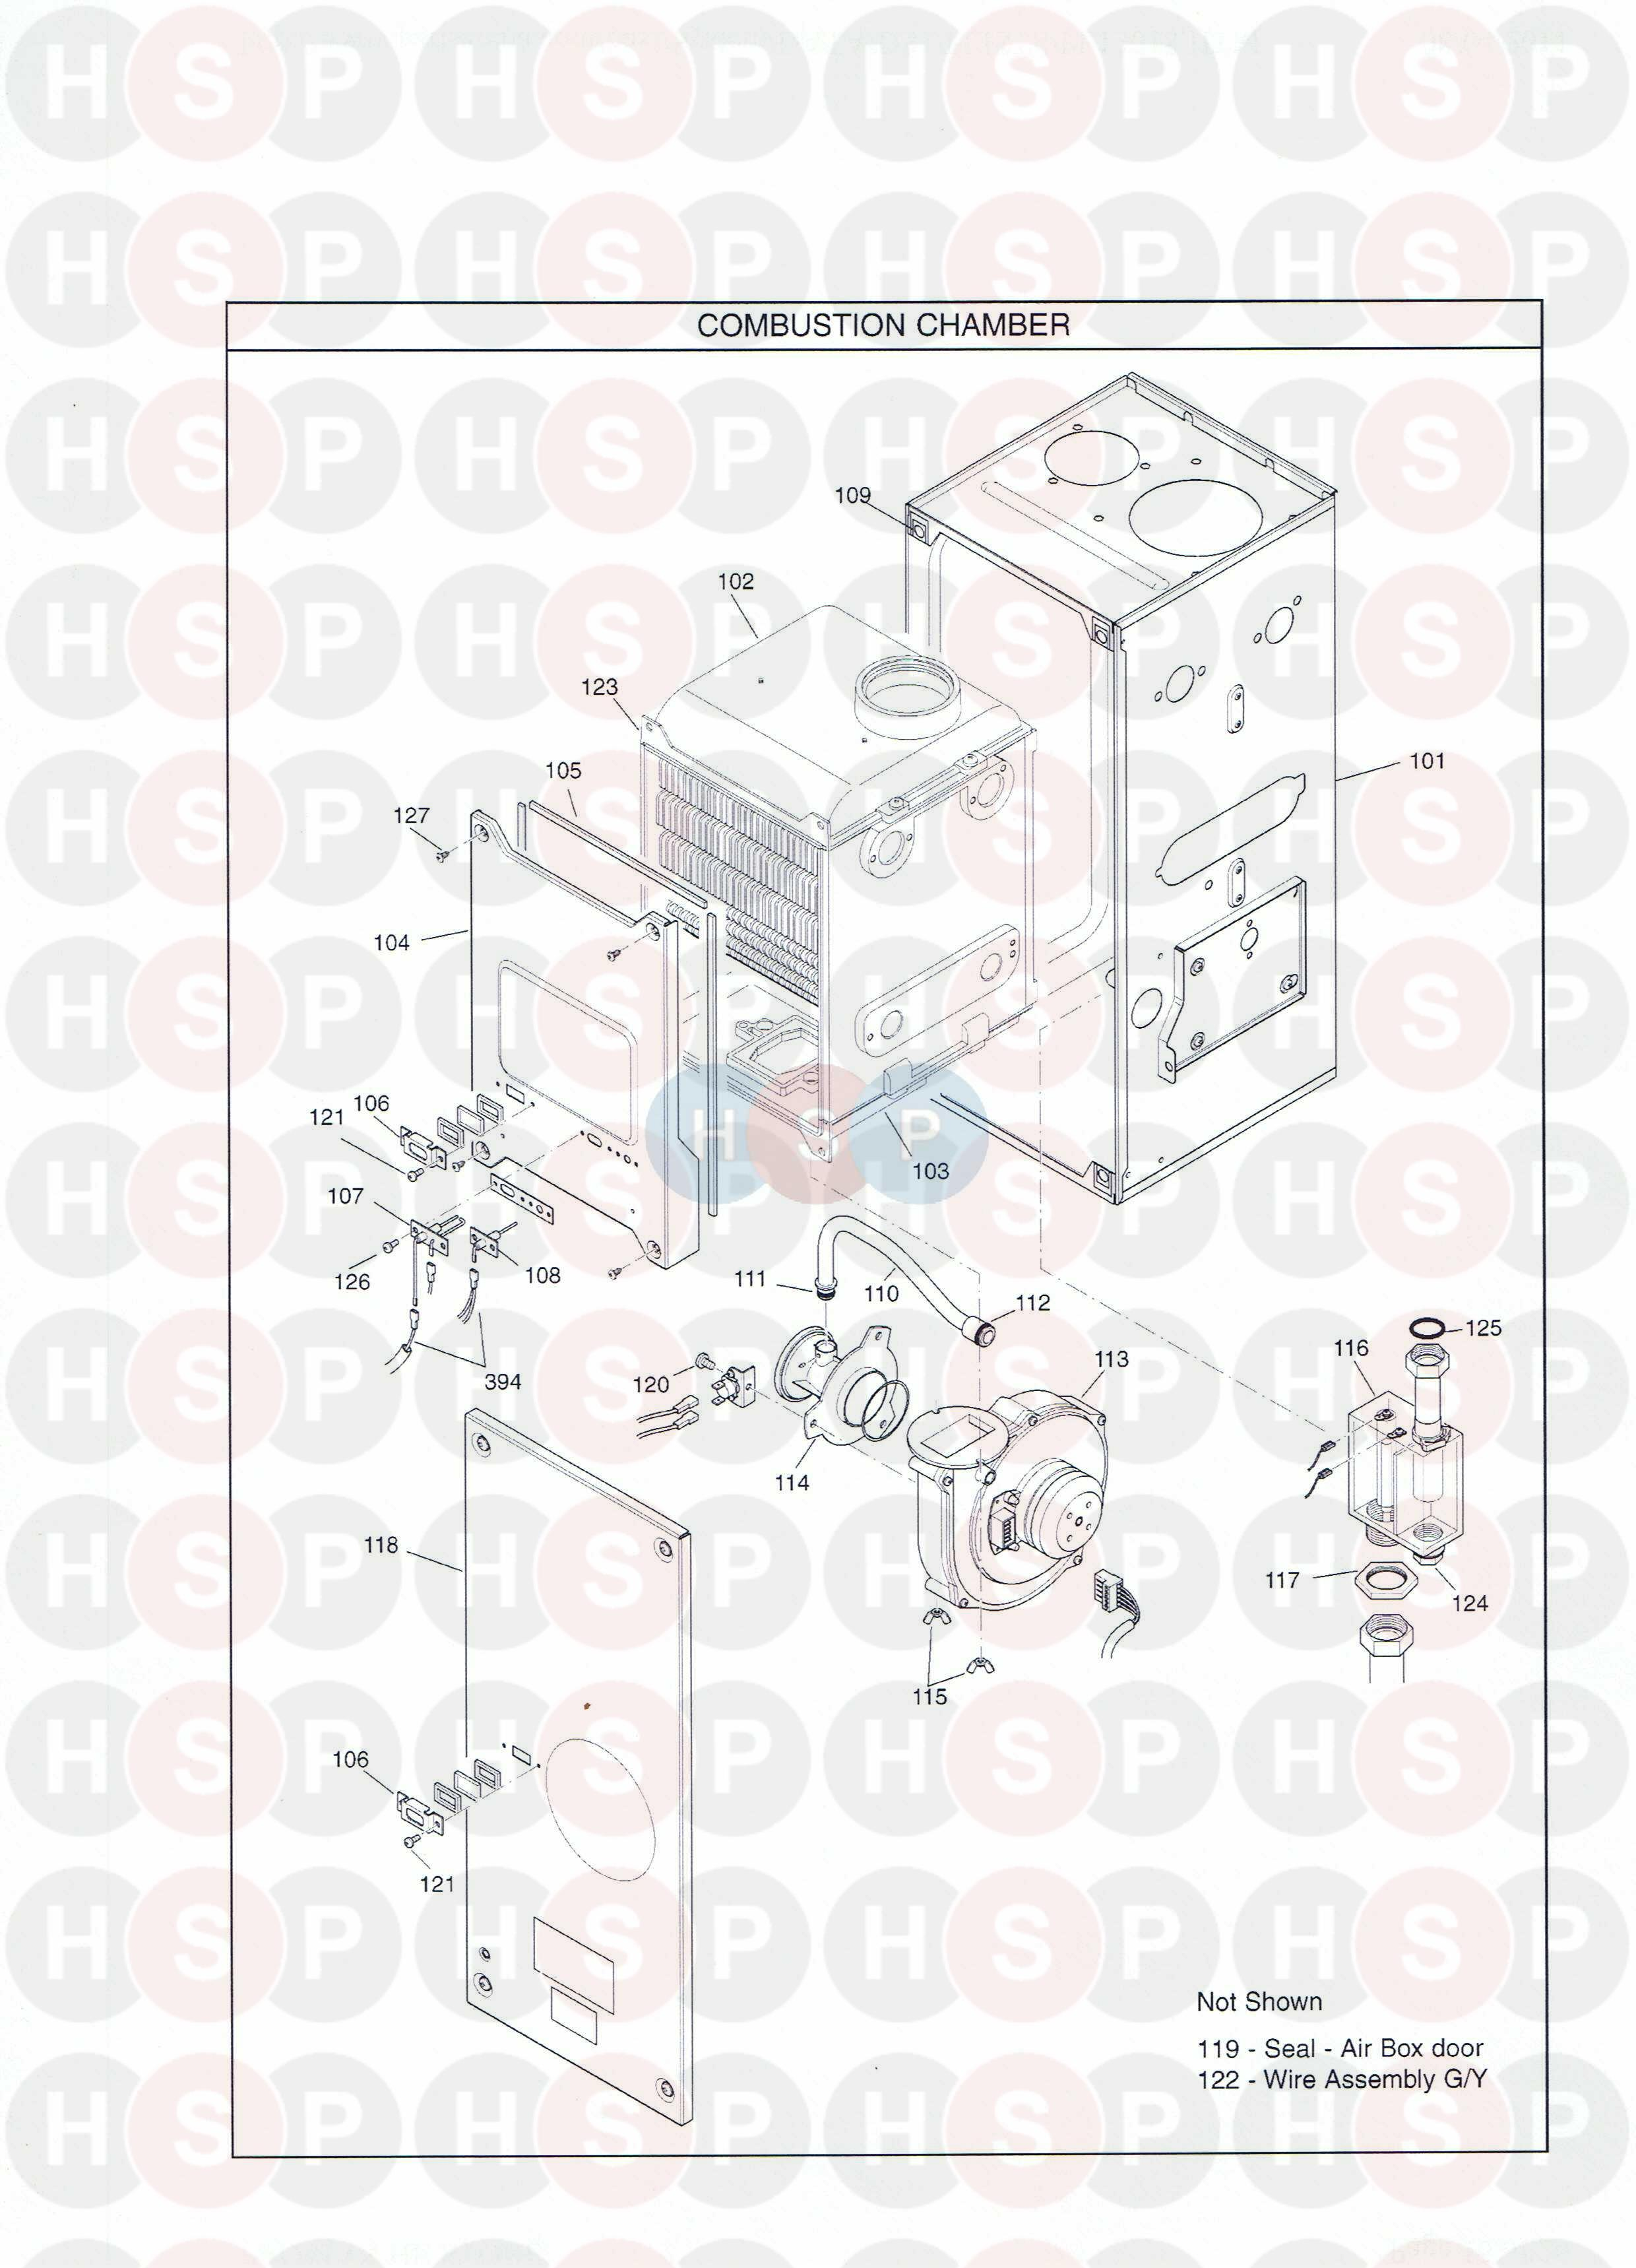 potterton promax he system  combustion chamber  diagram